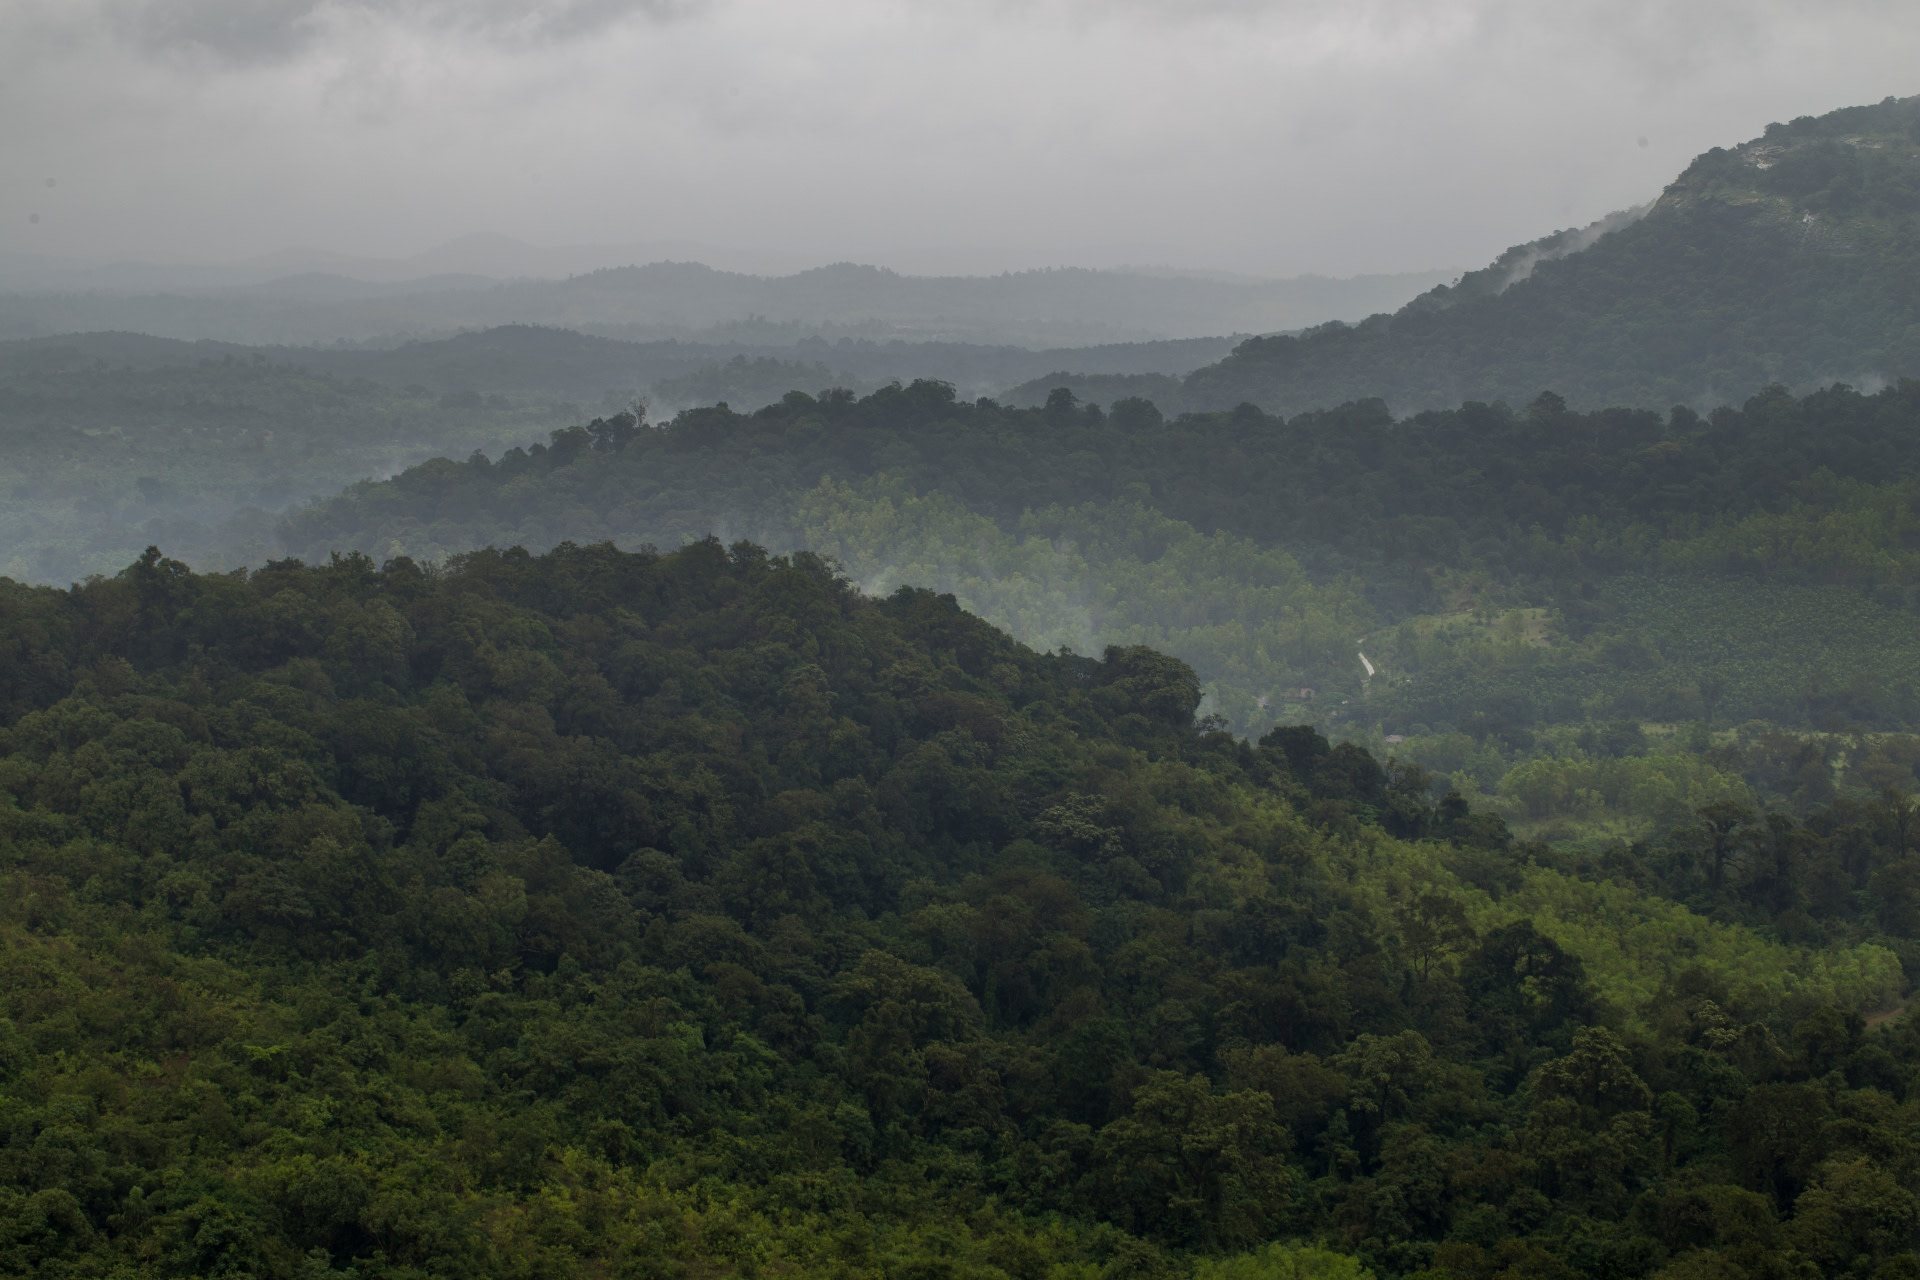 Heavy rain-bearing clouds from the Arabian Sea open up over Agumbe, contributing to making it one of the wettest places in the country. Photo: Saurabh Sawant  Located in the central Western Ghats of Karnataka, Agumbe's hillsides are a mix of rainforests, open meadows, and grasslands. Cover Photo: Pradeep Hegde